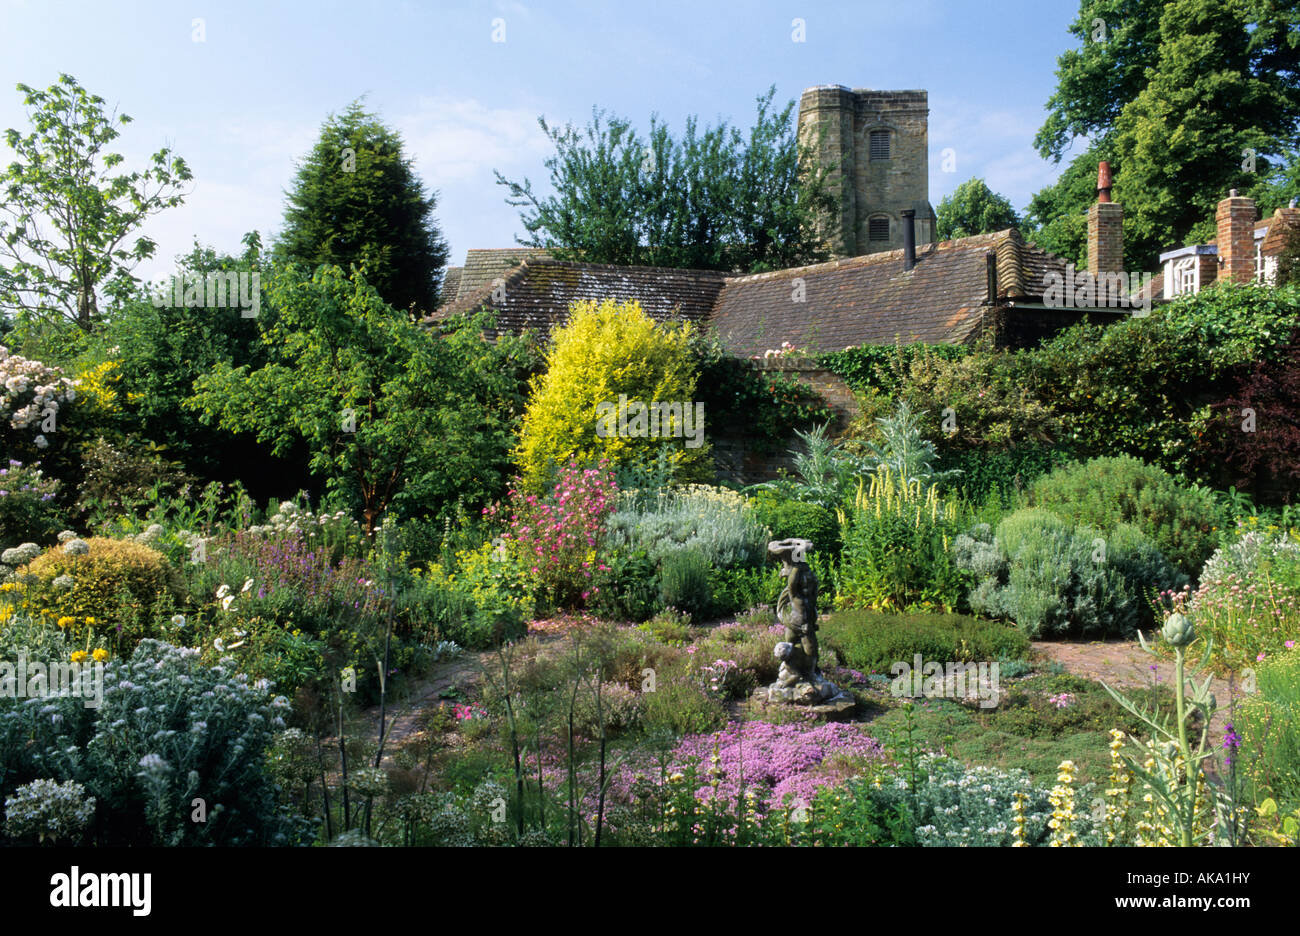 private garden Sussex herb garden with thyme and antique statue as focal point - Stock Image